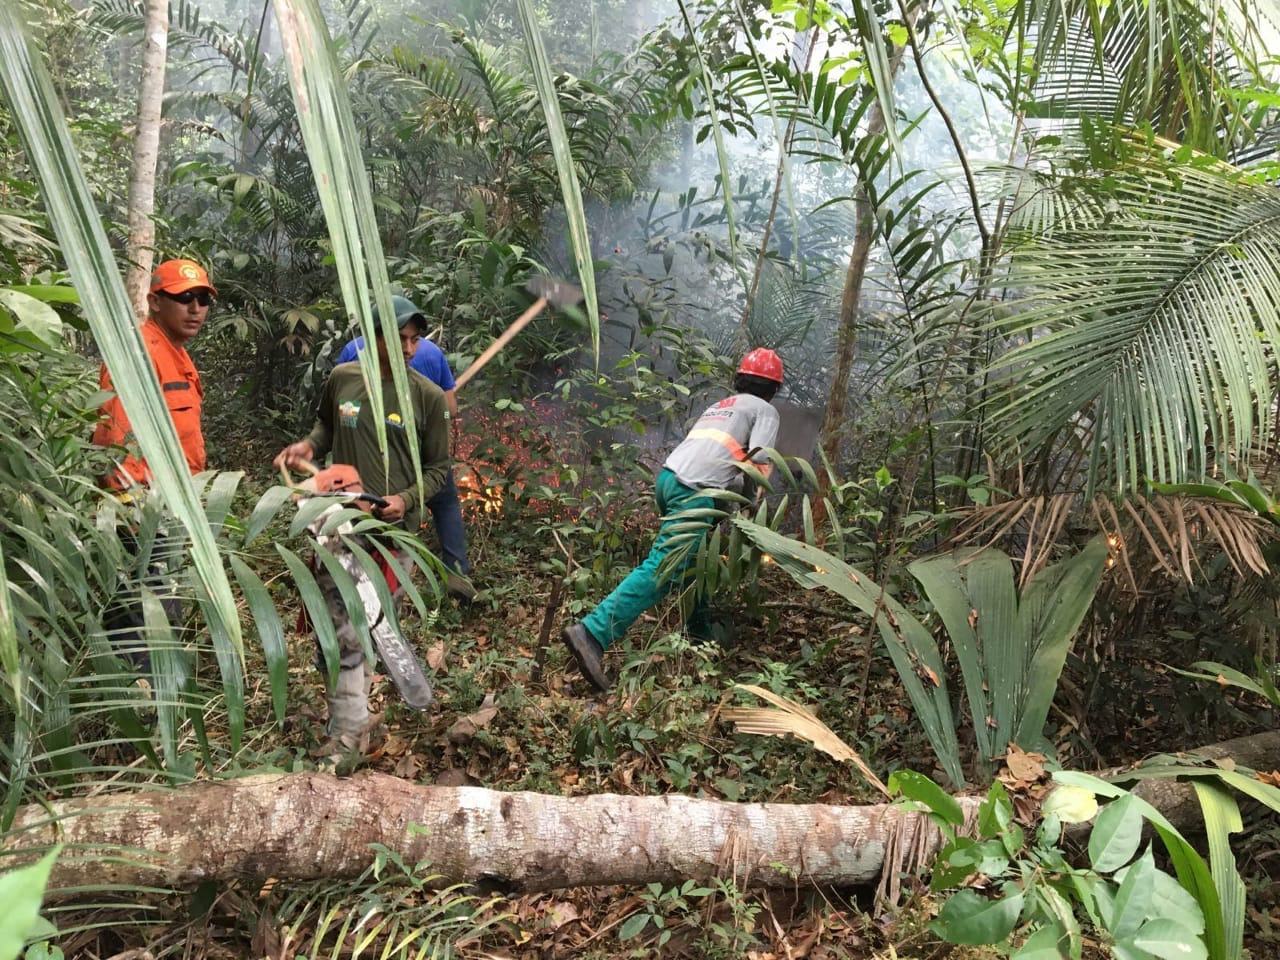 Firefighters brigade attempting to control the spread of the flames in the Aramanaí forest